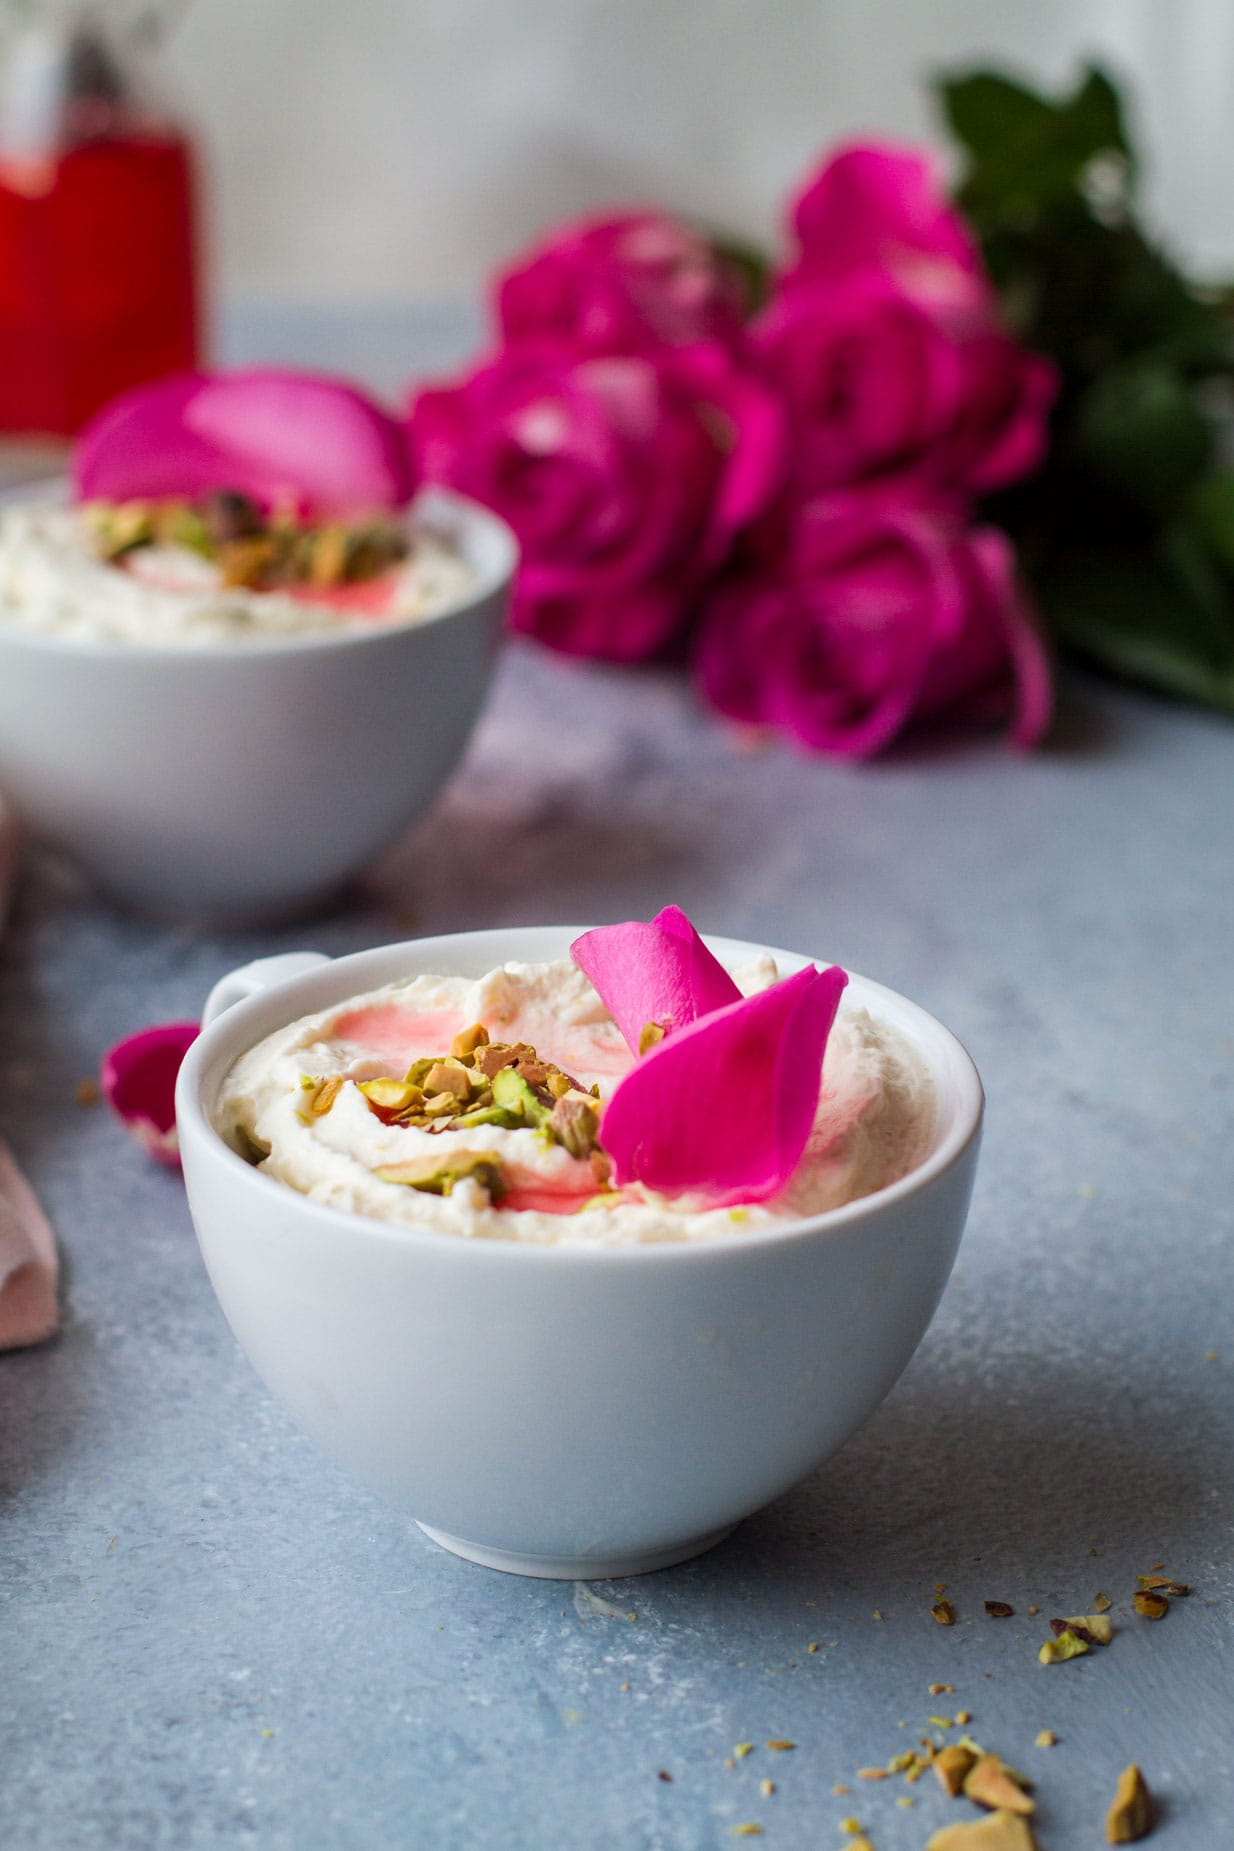 White cup with white mouse, chopped pistachios and rose petals. Roses and another cup blurred in the background. Blue table.